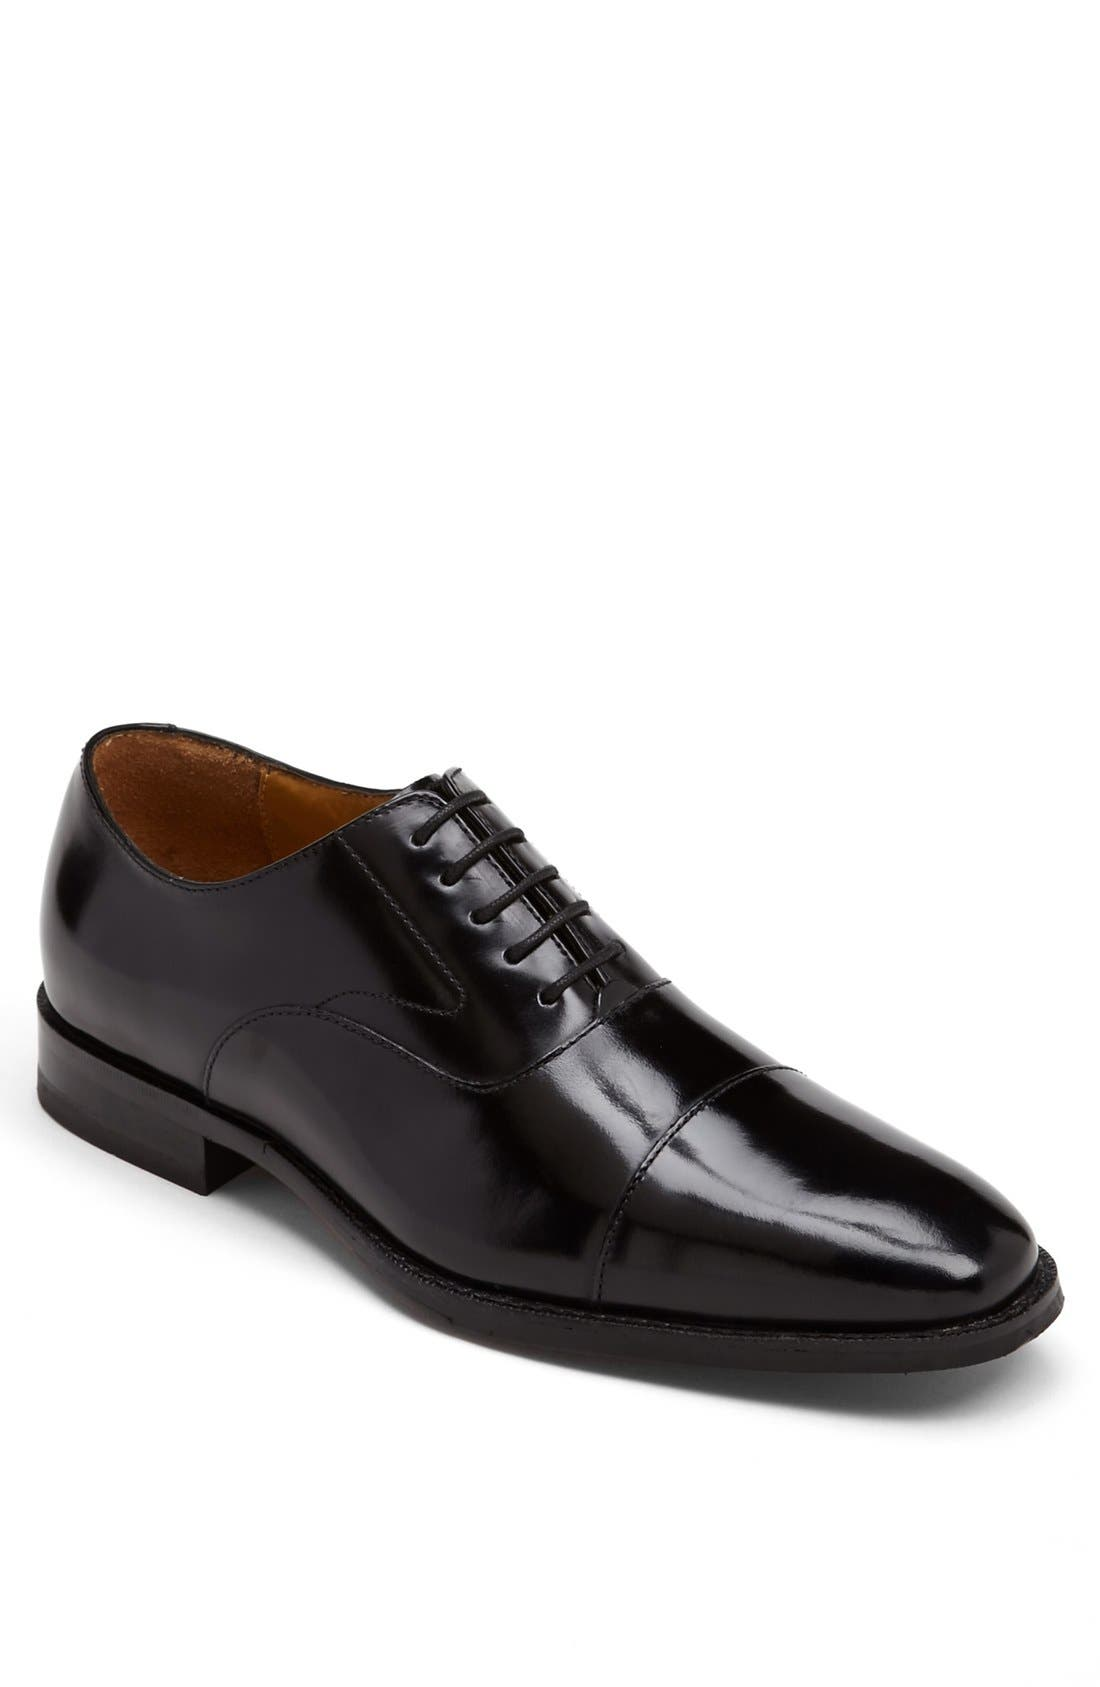 Main Image - Cole Haan 'Air Garrett' Cap Toe Oxford   (Men)